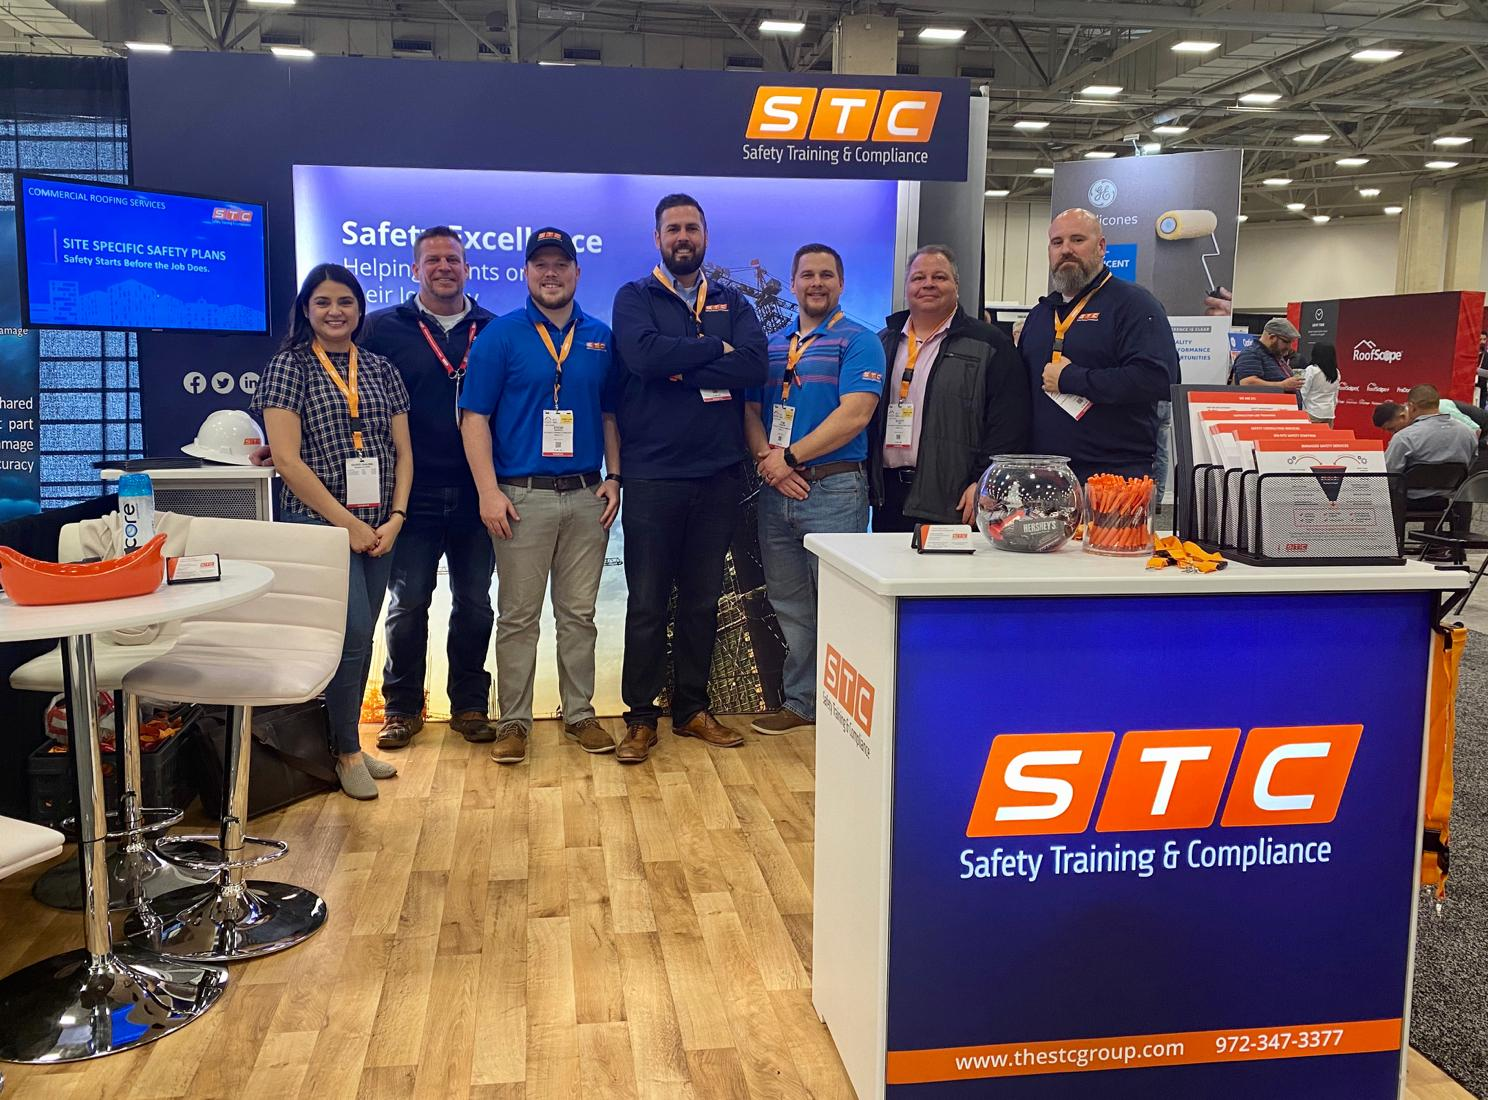 STC Safety Consulting